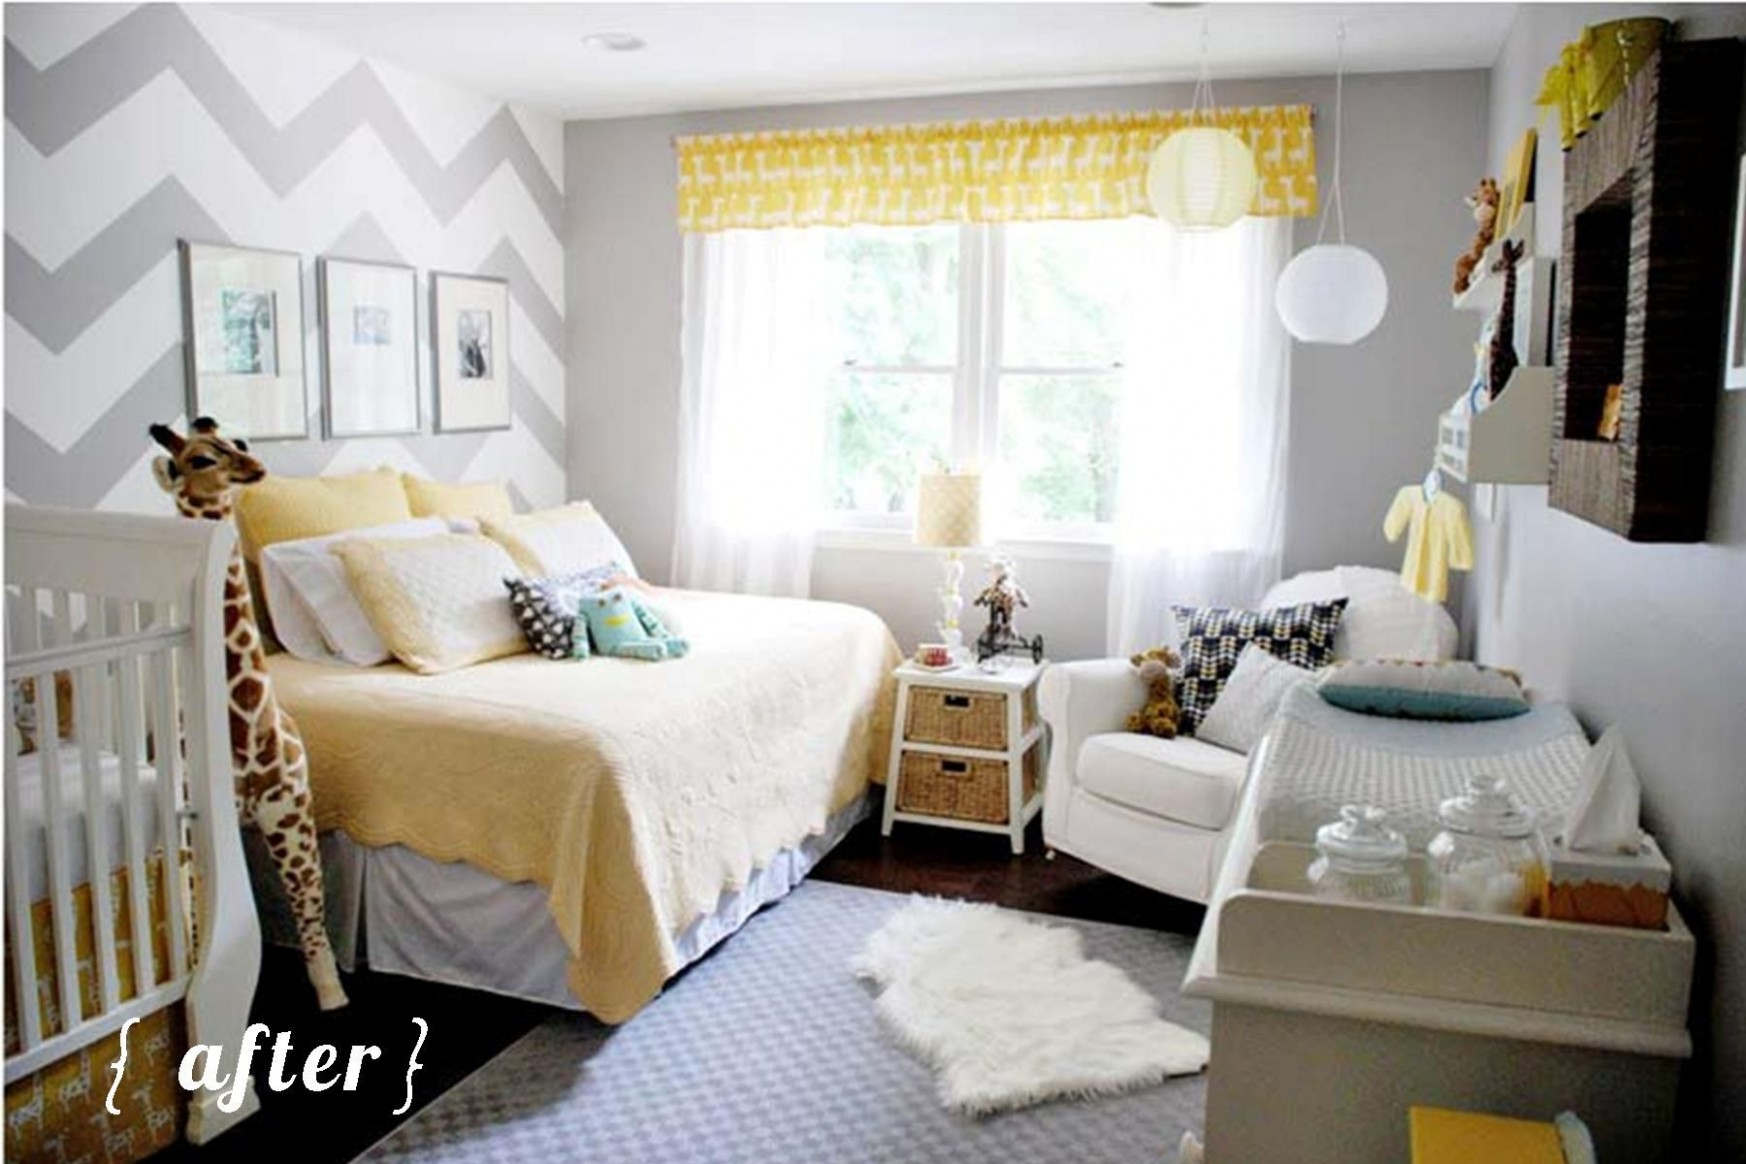 Pin on A nursery someday - Baby Room With Queen Bed